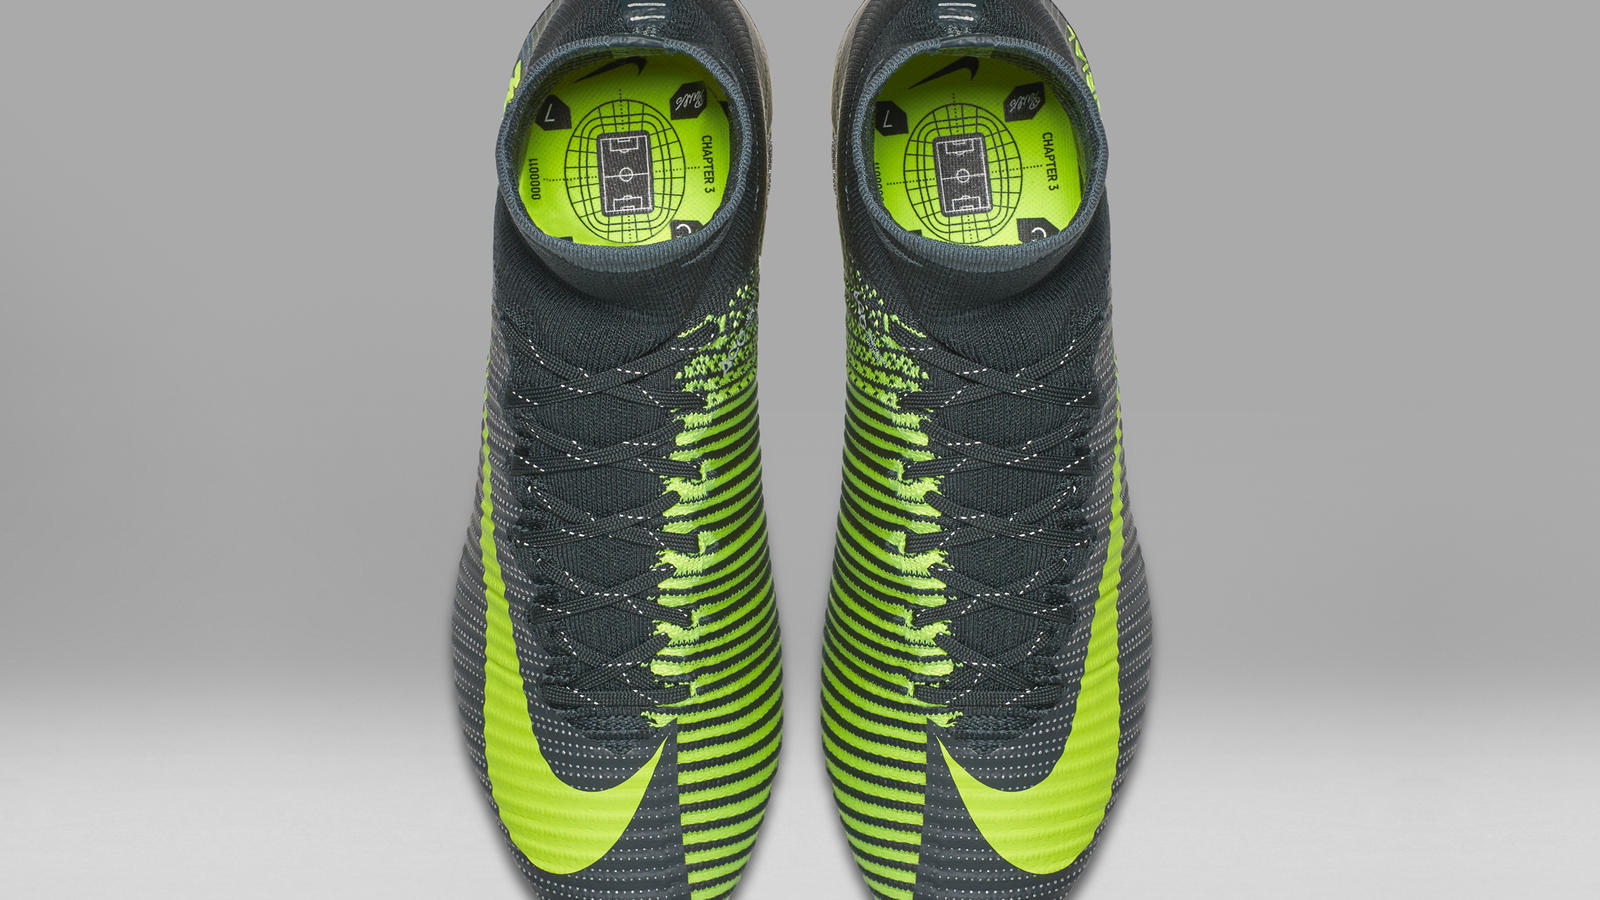 HO16_GFB_CR7_Chapter_3_Mercurial_Superfly_FG_06_07_hd_1600